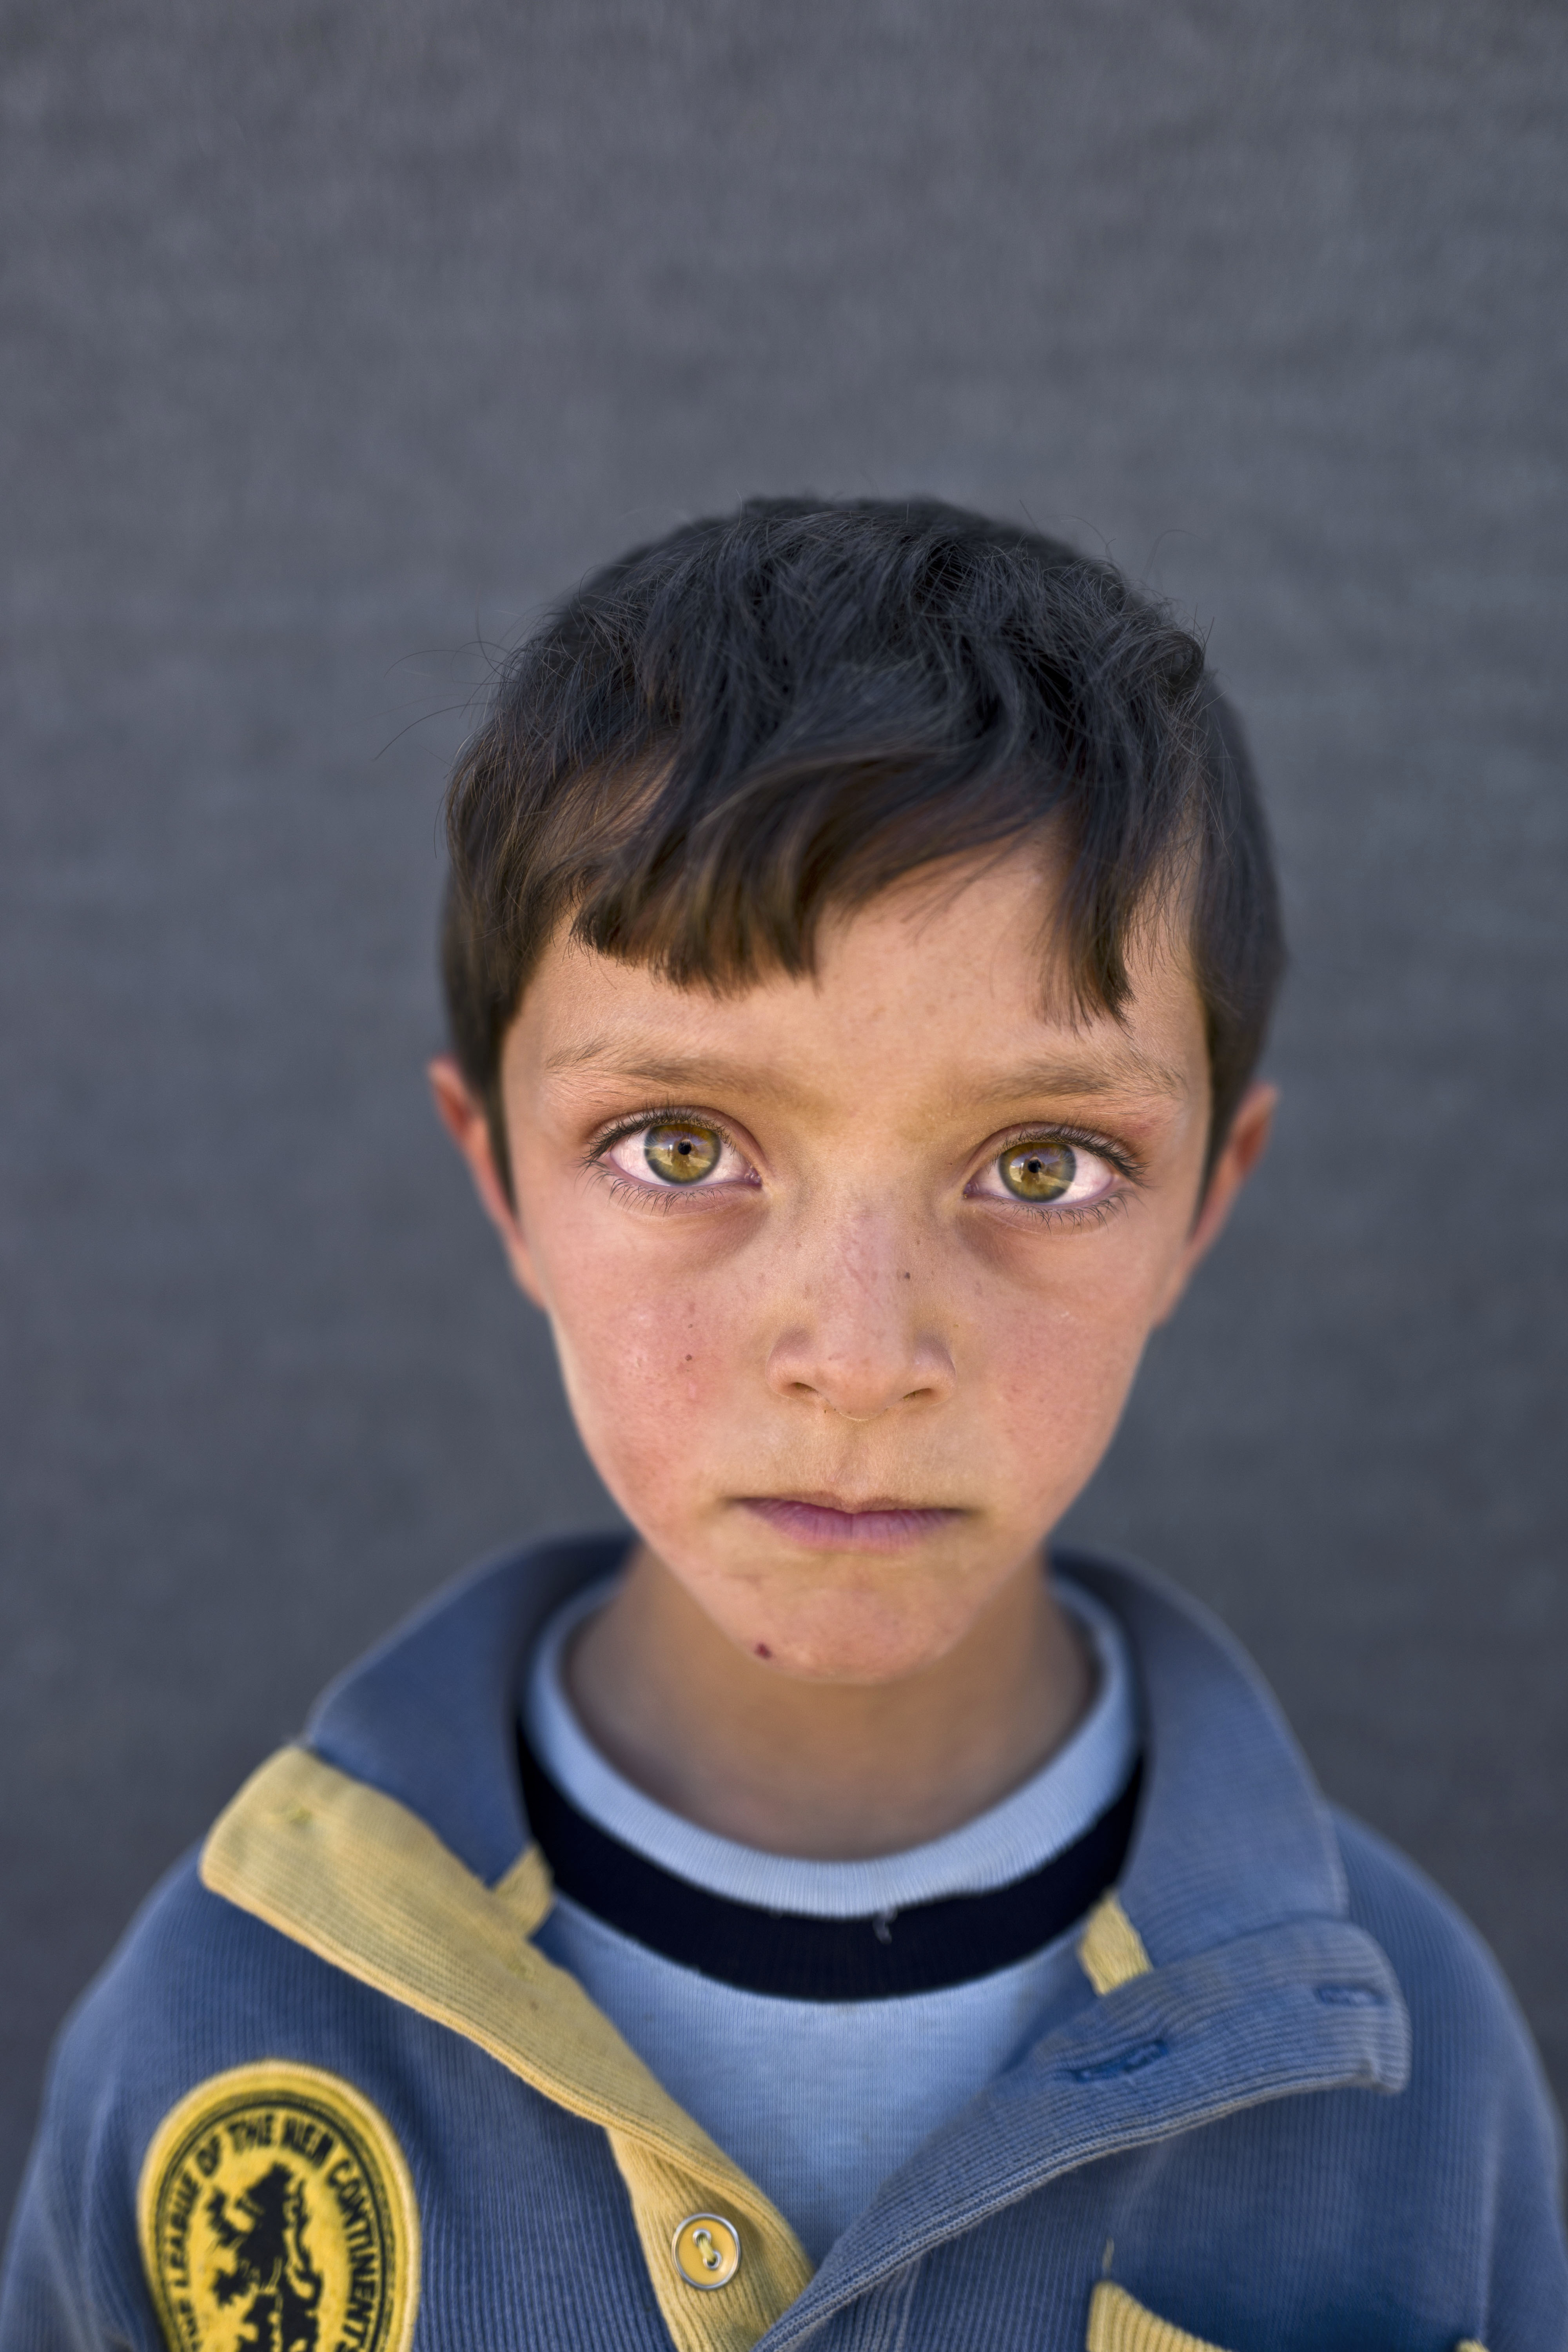 """<strong>Ahmad Zughayar</strong>, 6, from Deir el-Zour. """"I remember the sound of bombings on homes in Deir el-Zour,"""" says Zughayar."""